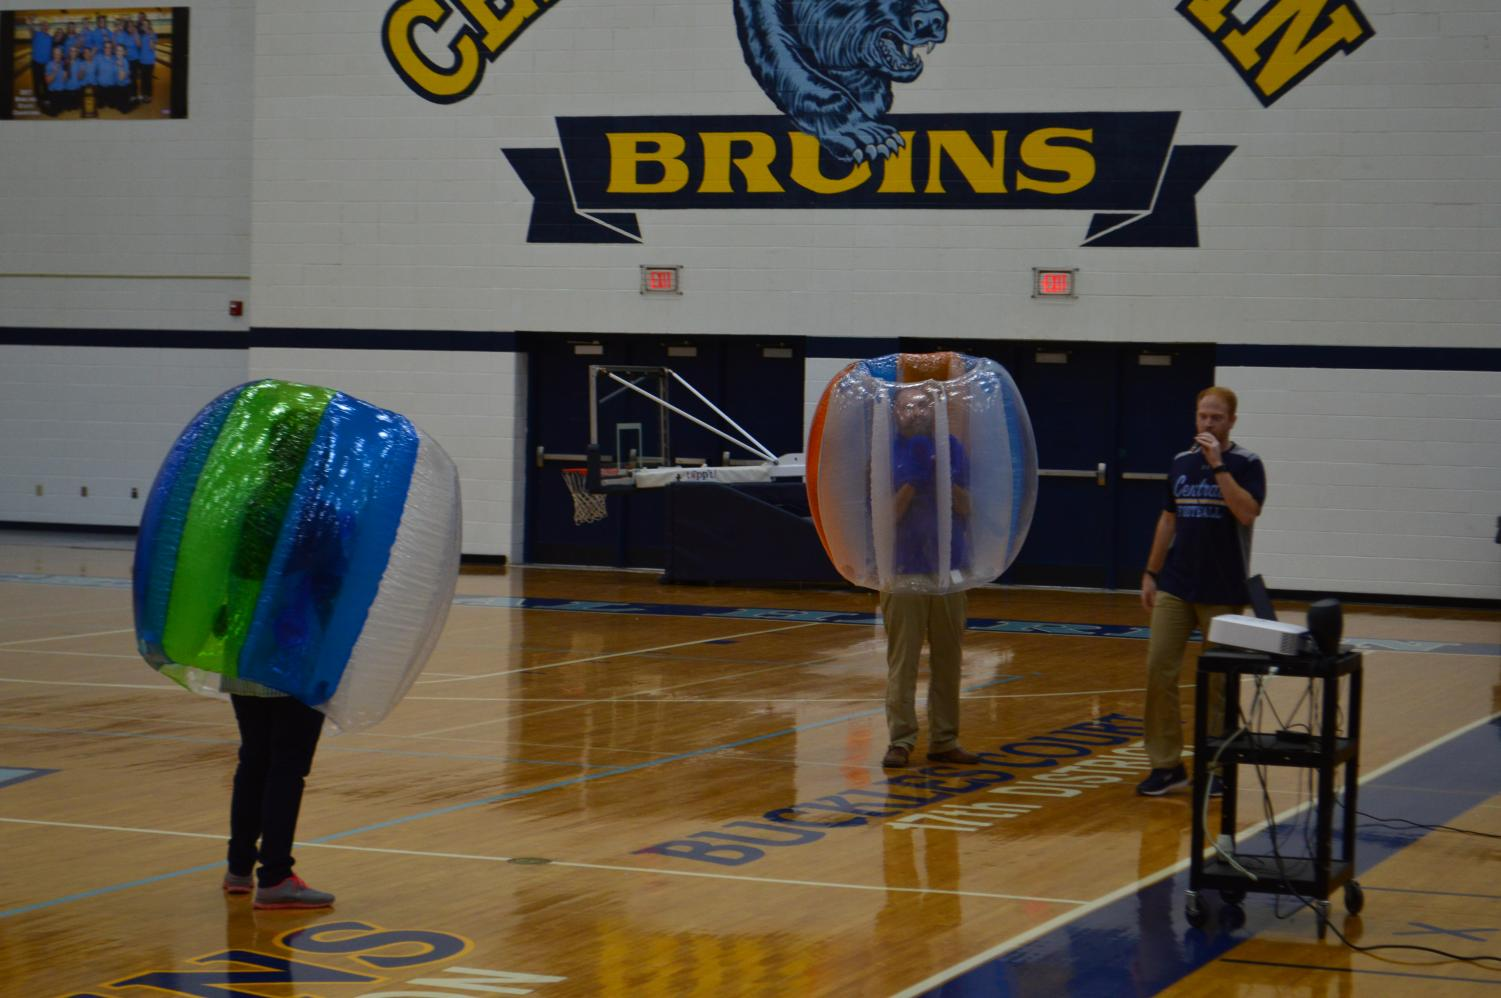 Assistant+principals+Dan+Corley+and+Chastity+Yates+suit+up+in+bubbles+and+face+off+in+a+brawl.%C2%A0